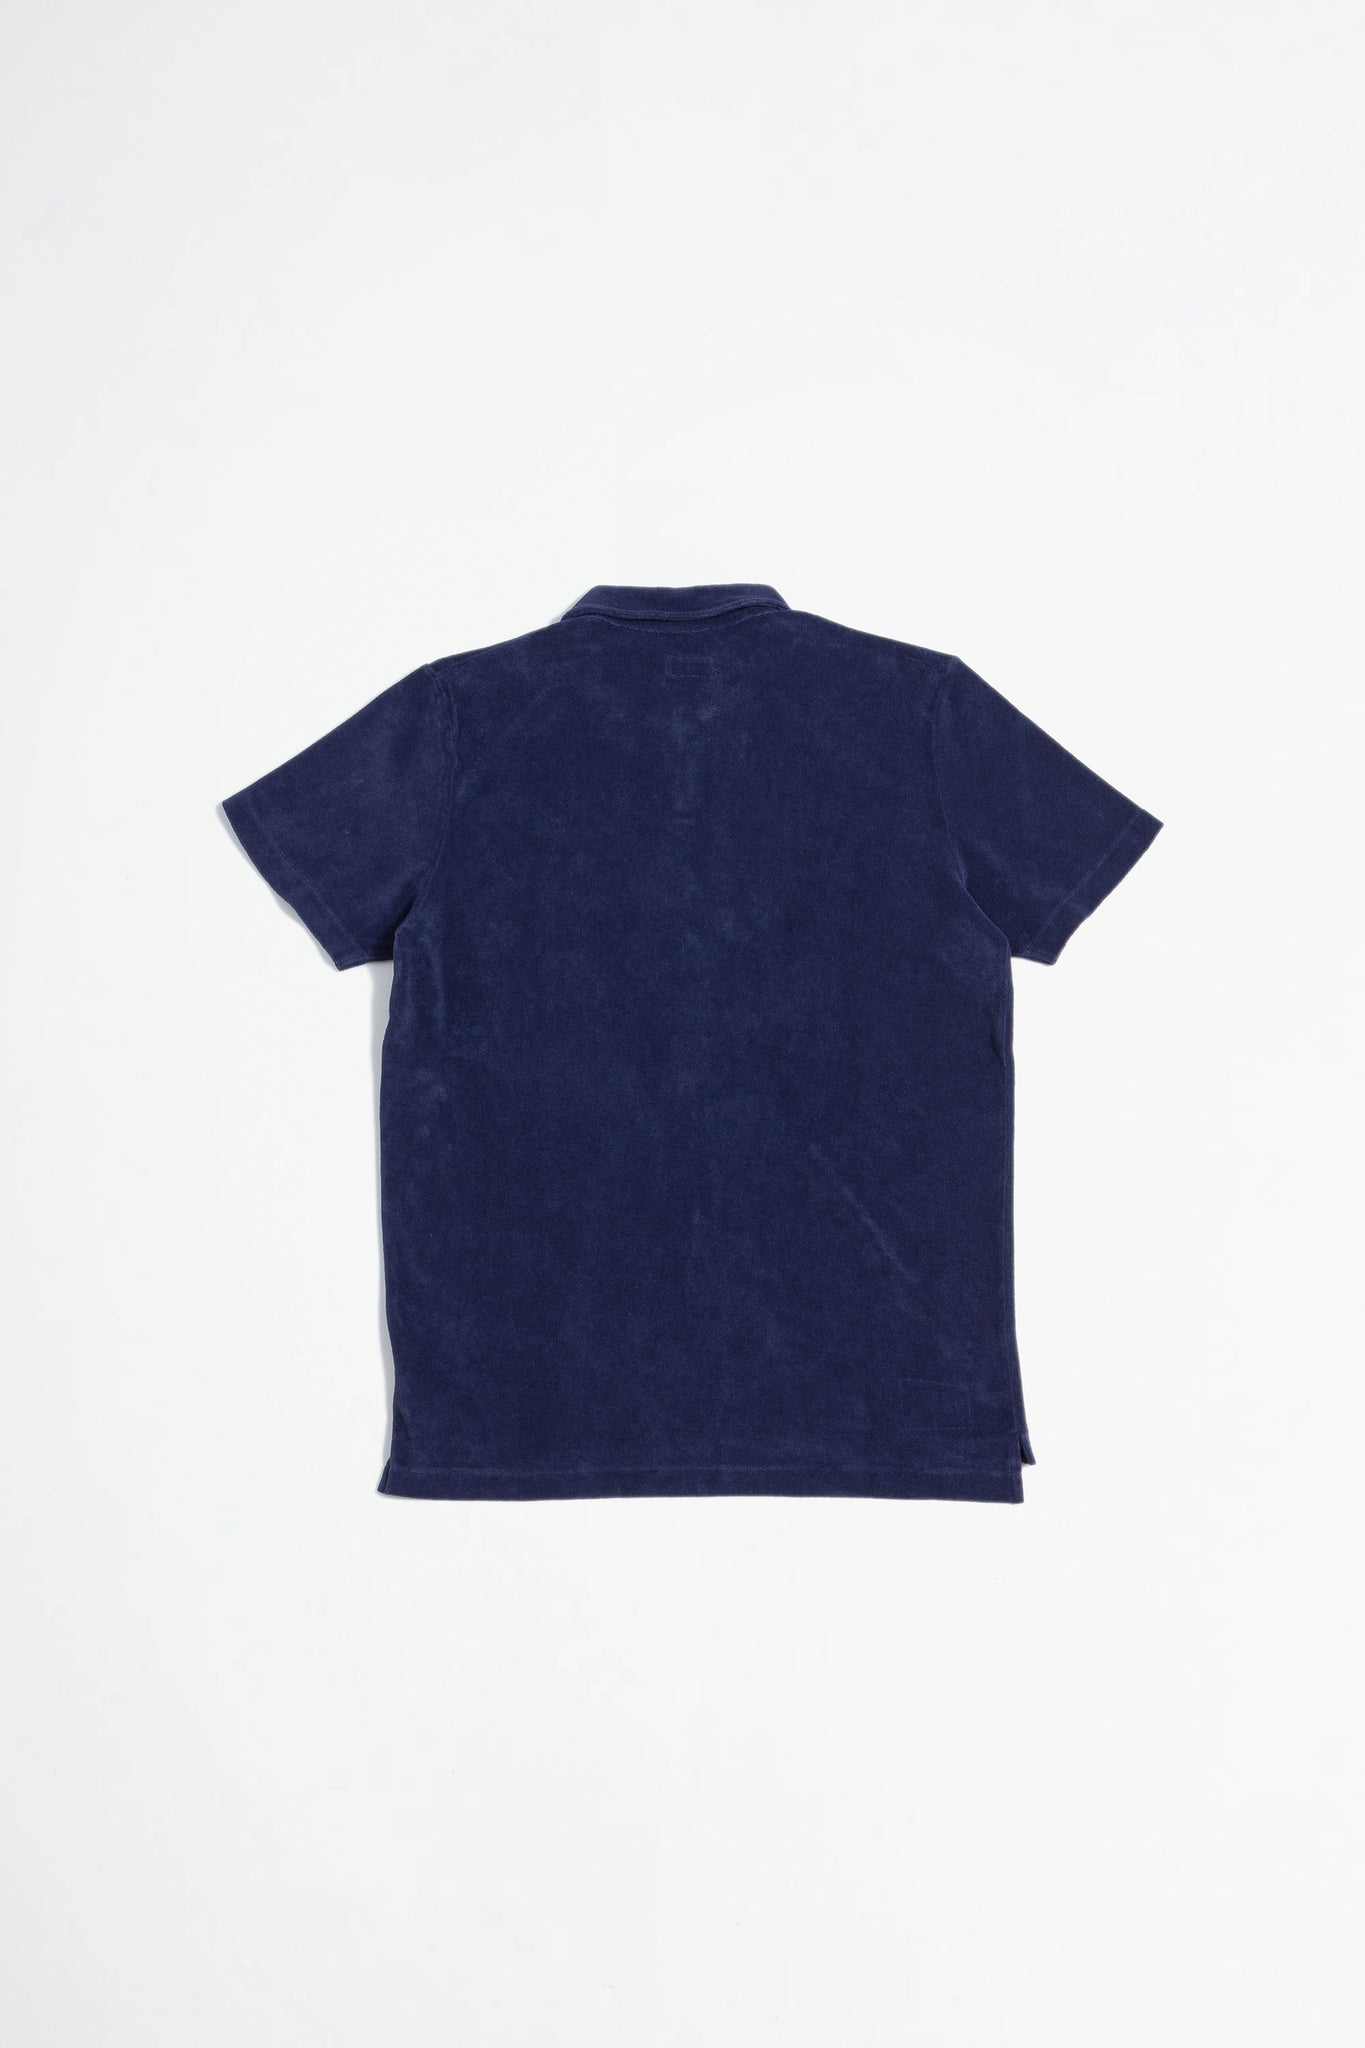 Vacation polo terry navy